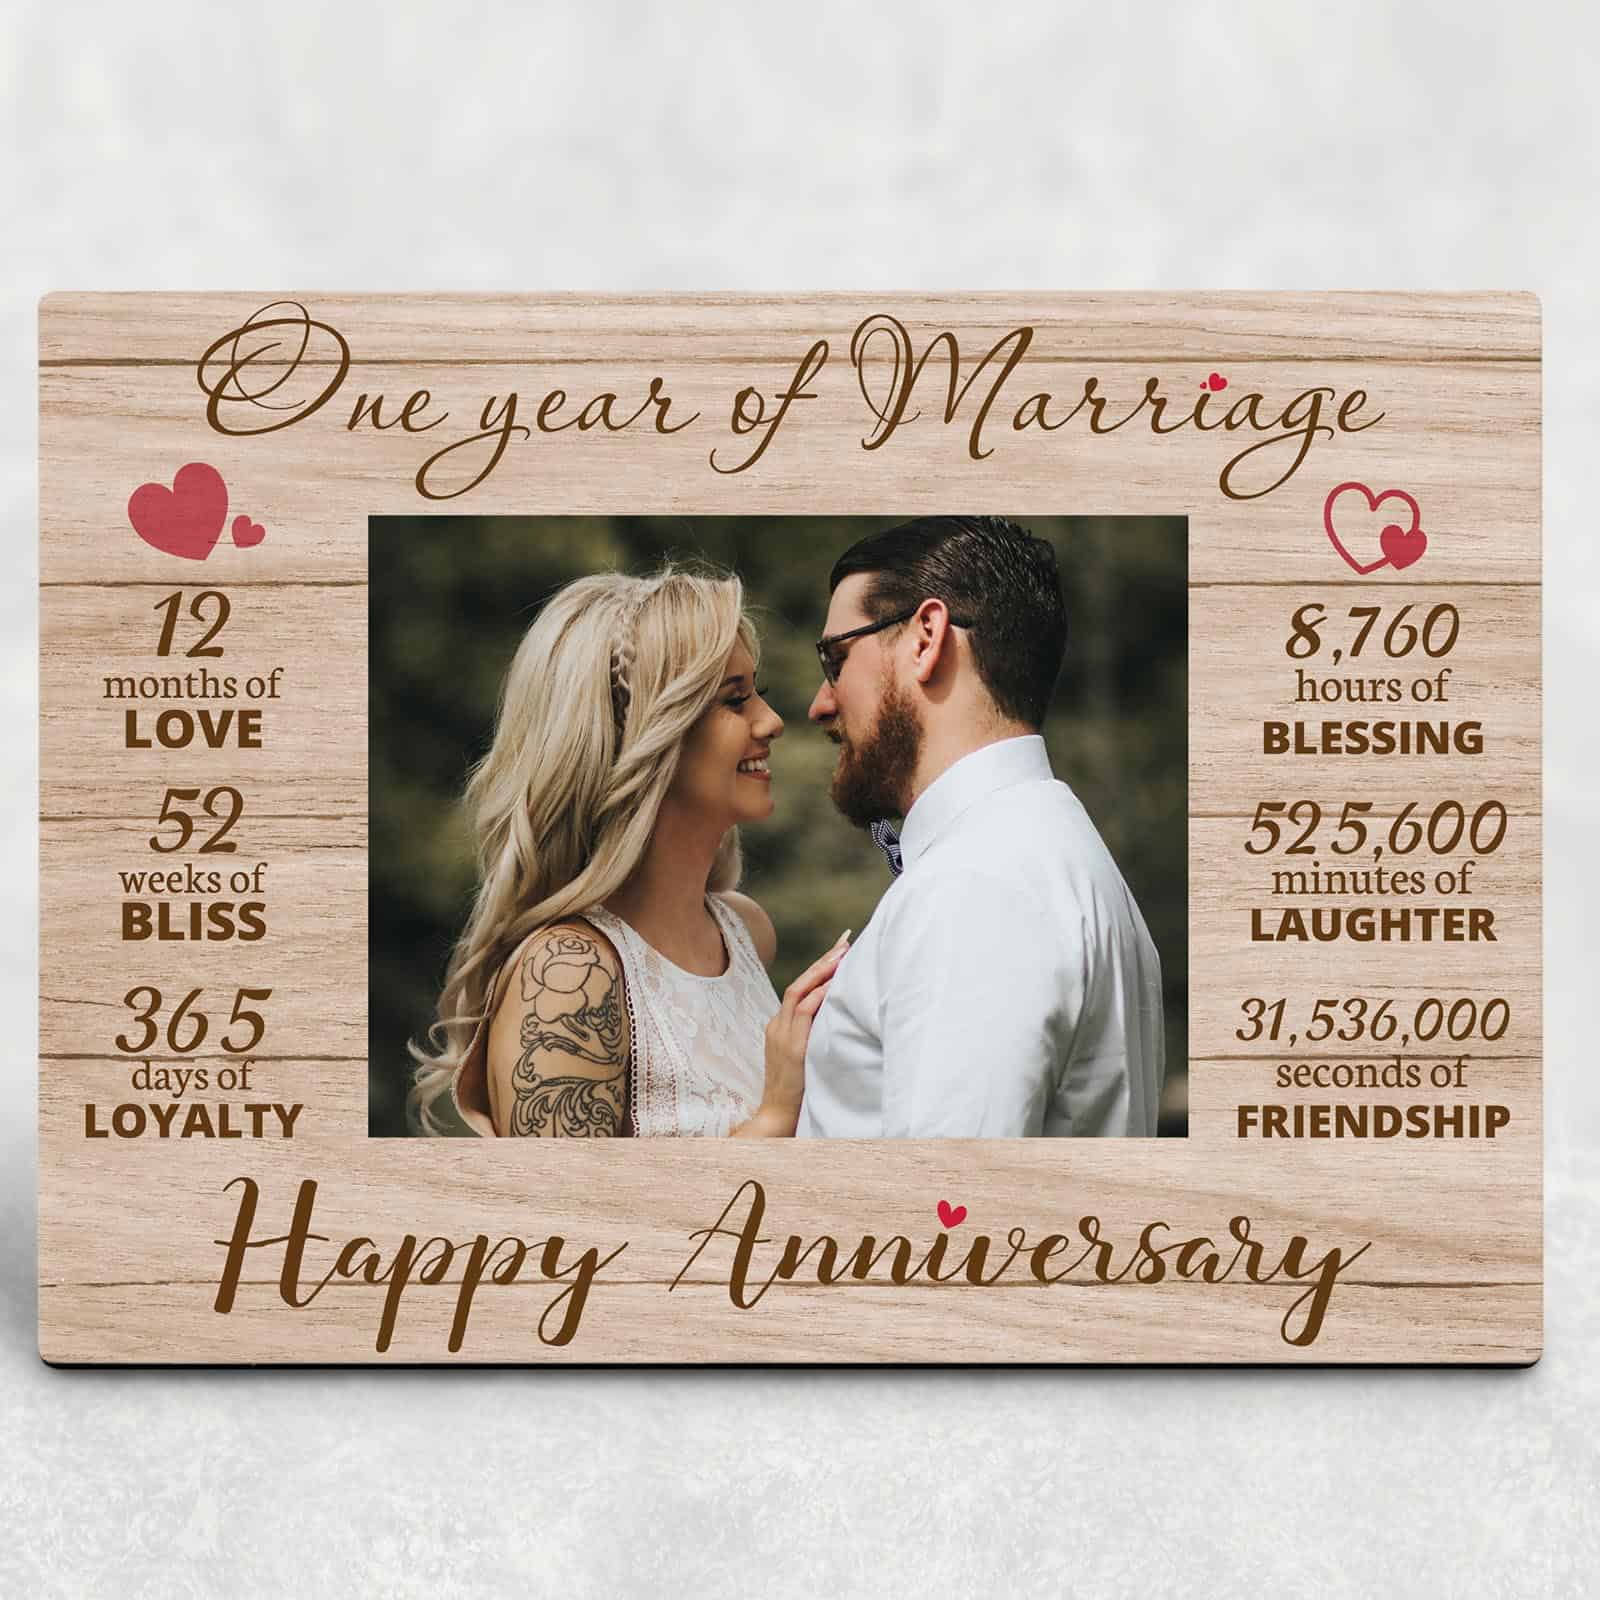 One Year of Marriage Anniversary Custom Photo Plaque